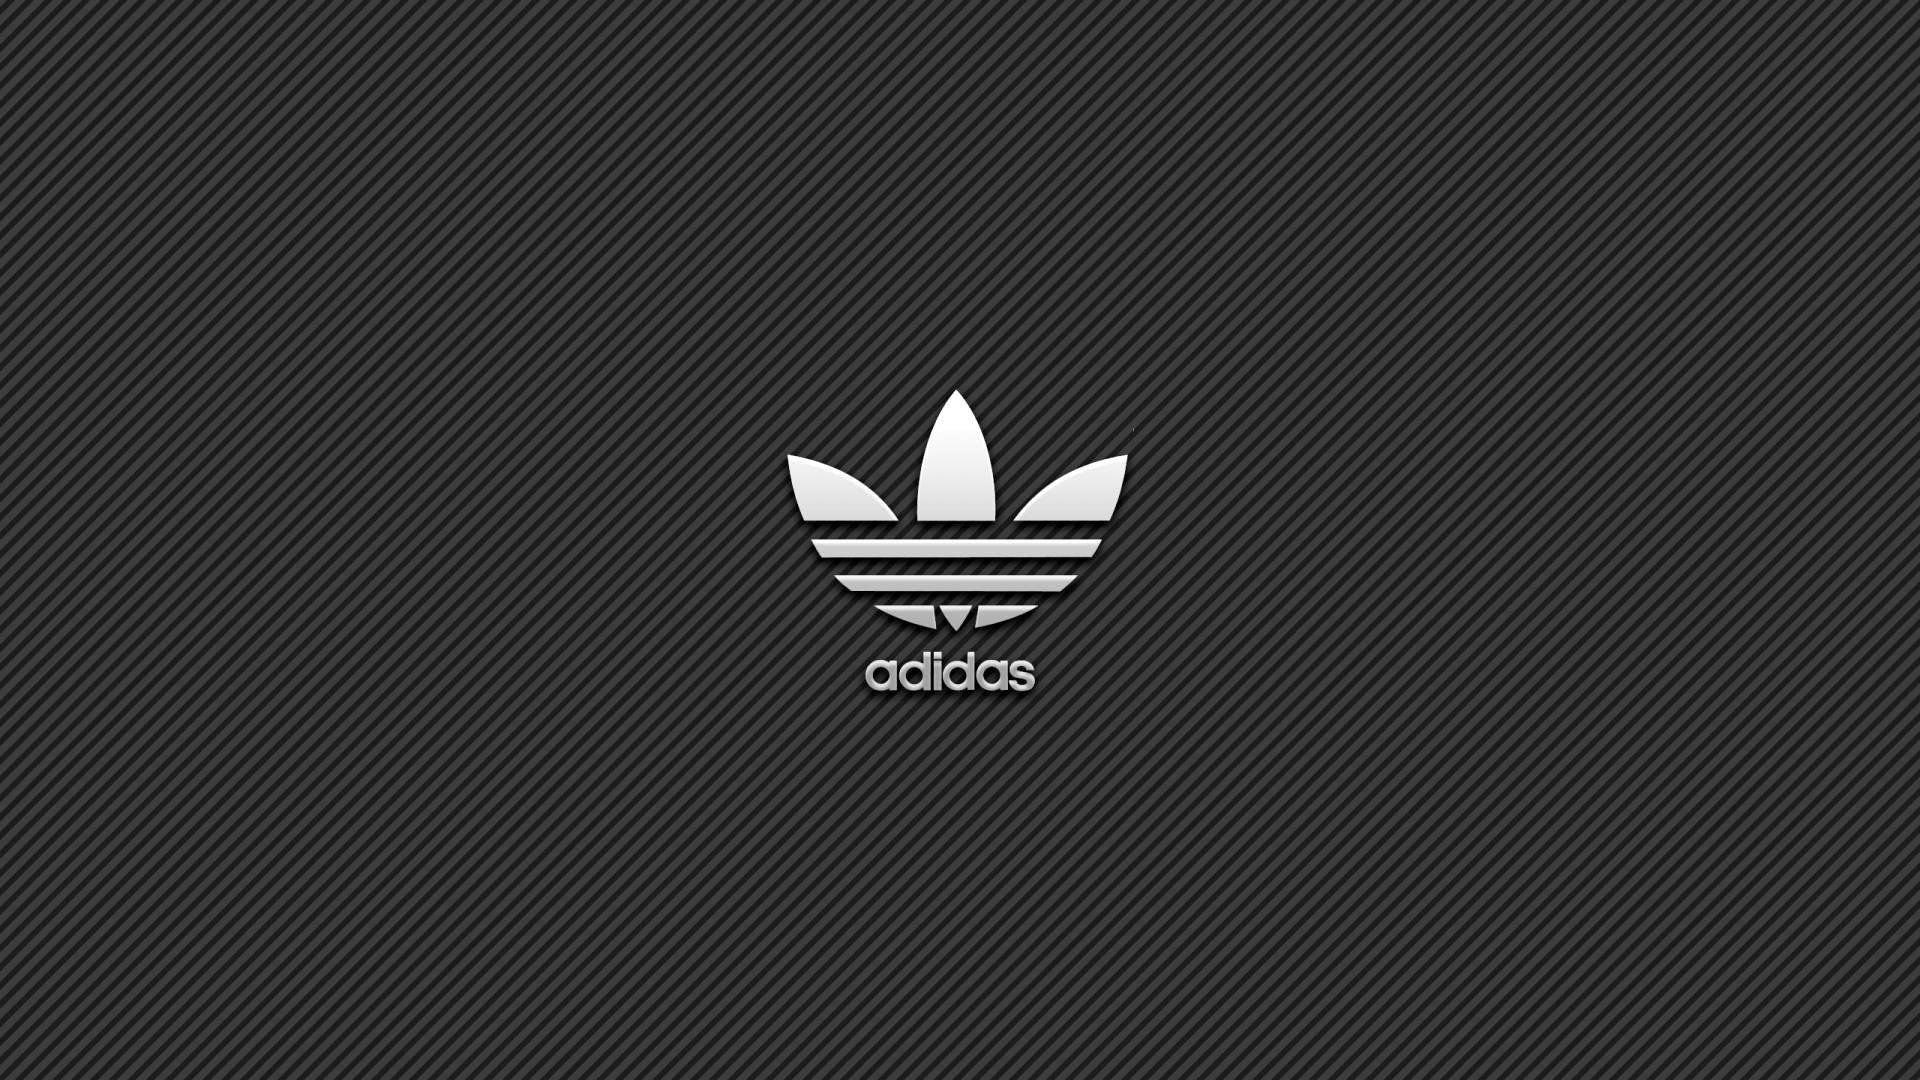 64 Adidas Originals Wallpapers on WallpaperPlay 1920x1080